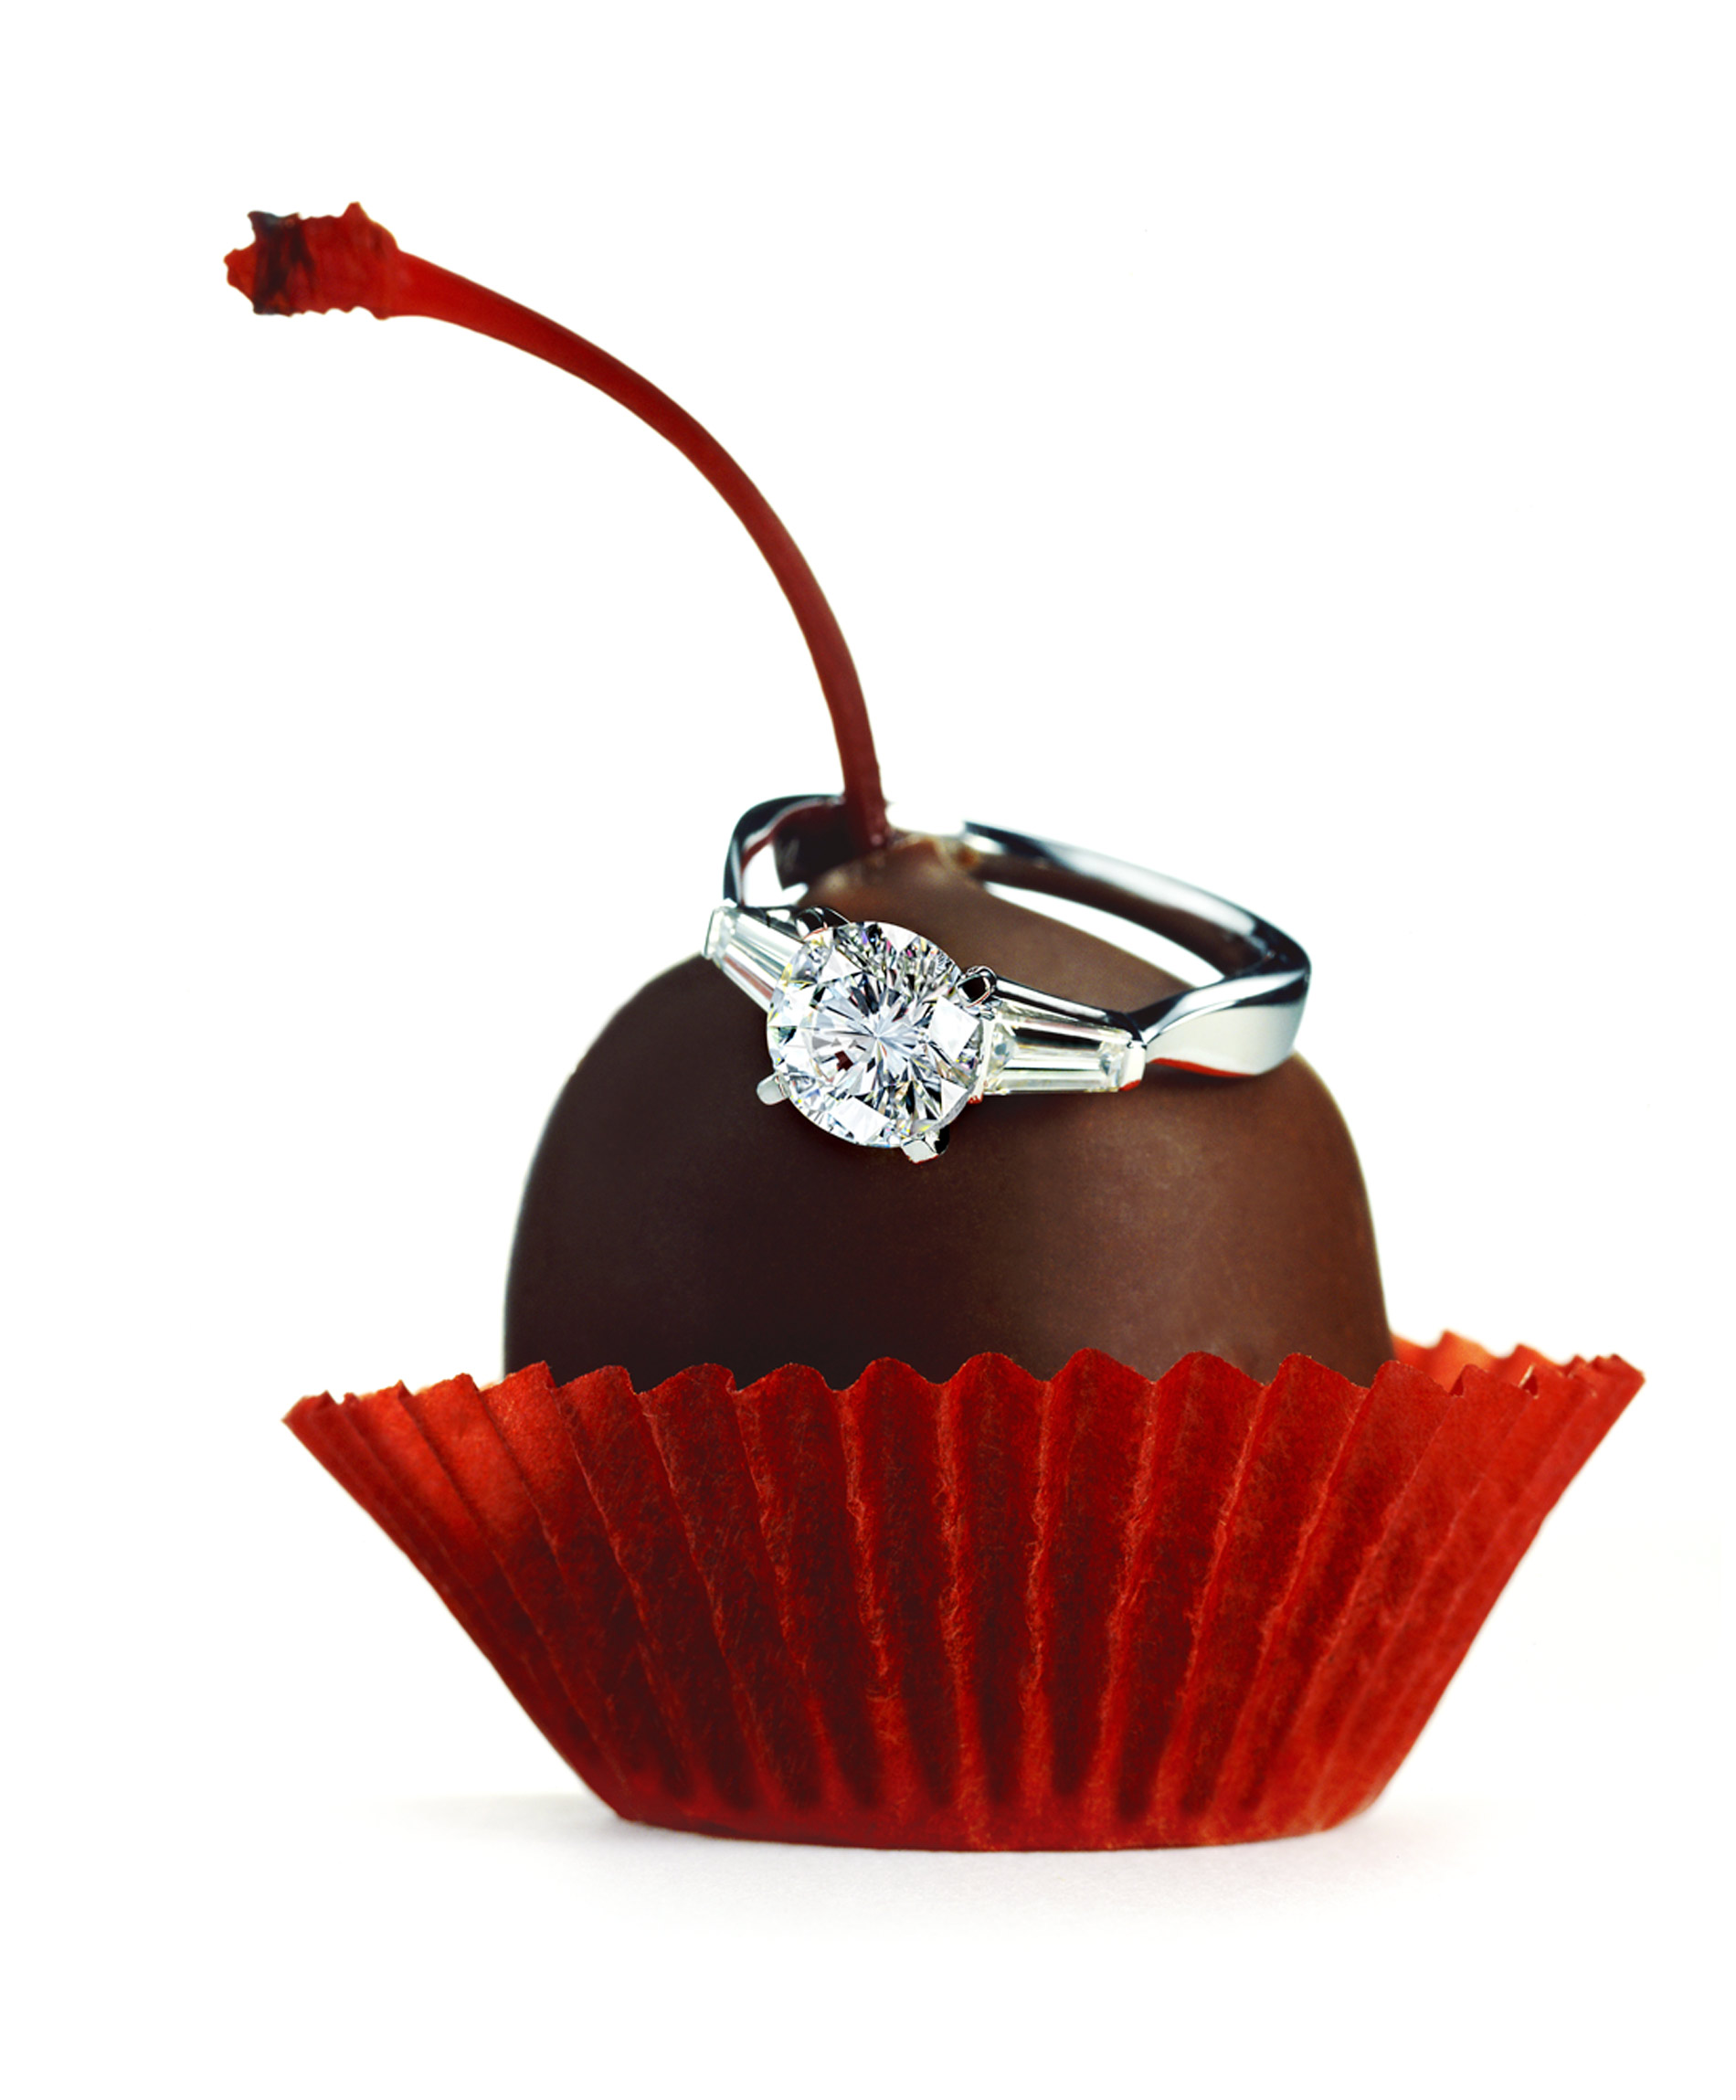 Diamond ring jewlery on a Godiva chocolate cherry cordial